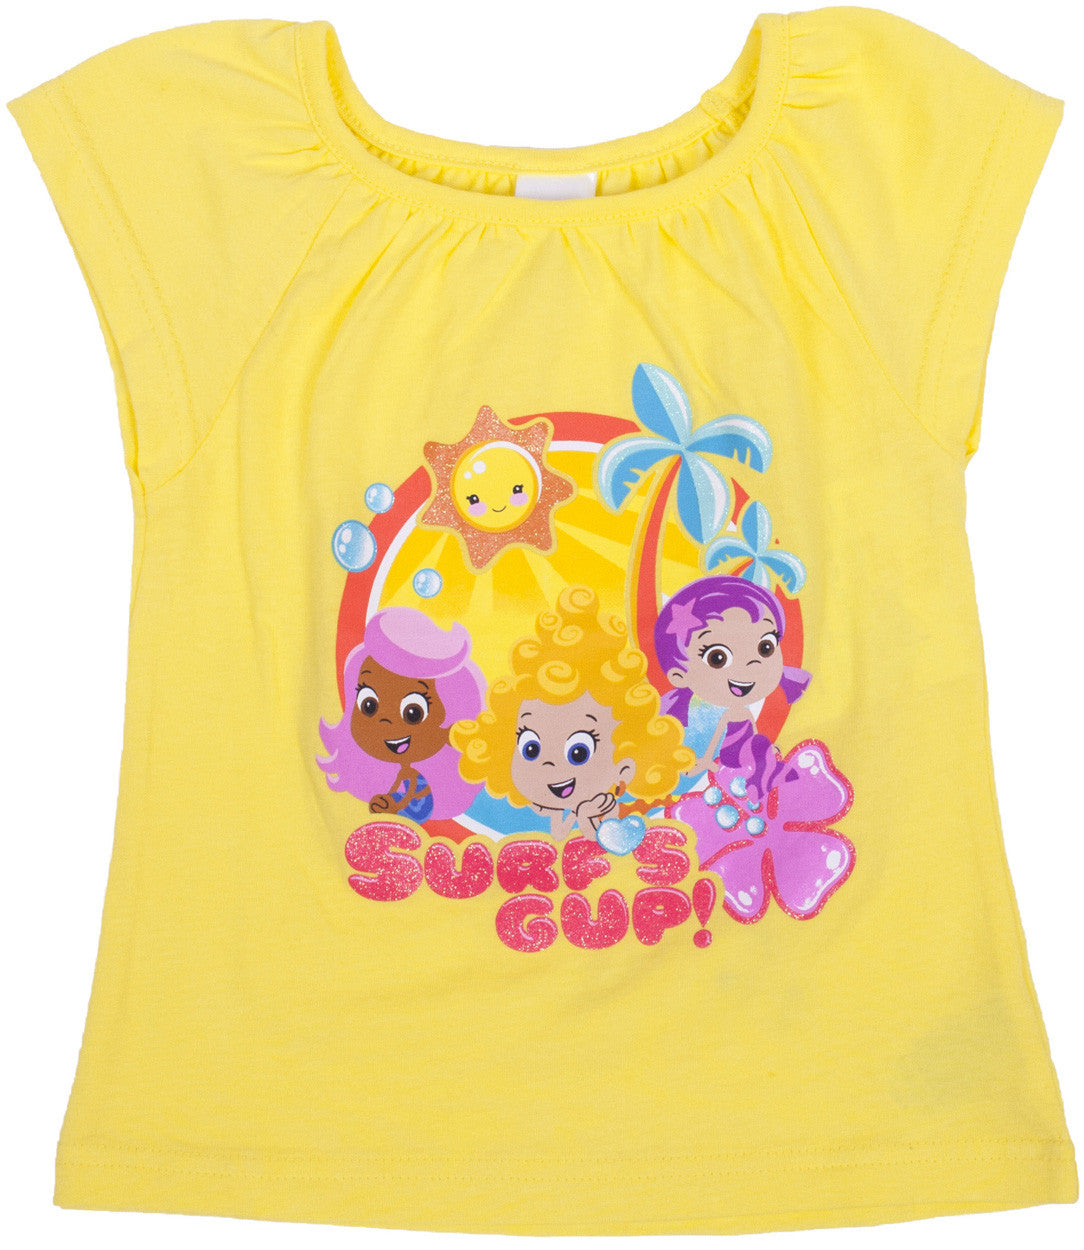 "Bubble Guppies ""Surfs Gup"" Tee - Toddler - nickelodeonstore.co.uk"